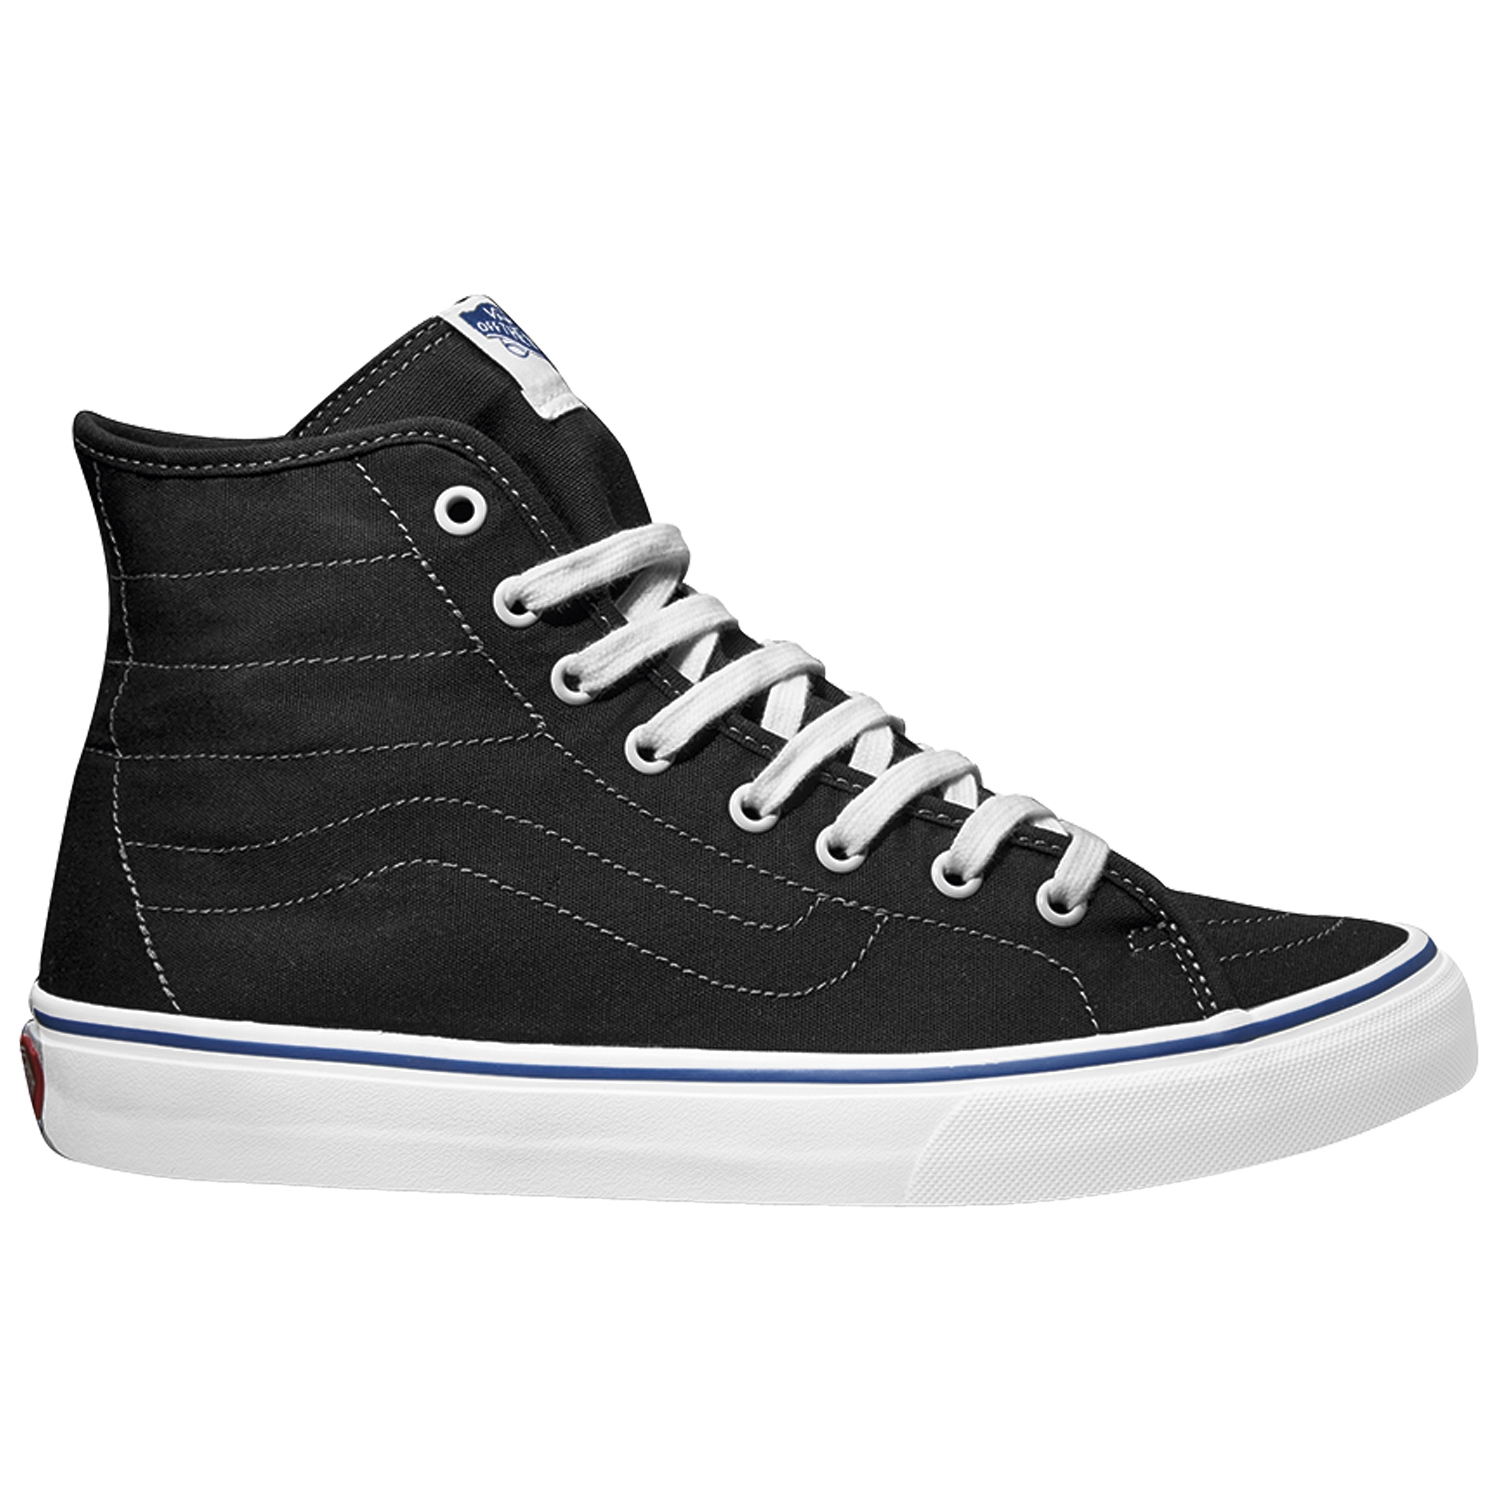 vans-sk8-hi-decon-canvas-black-true-white-119-90